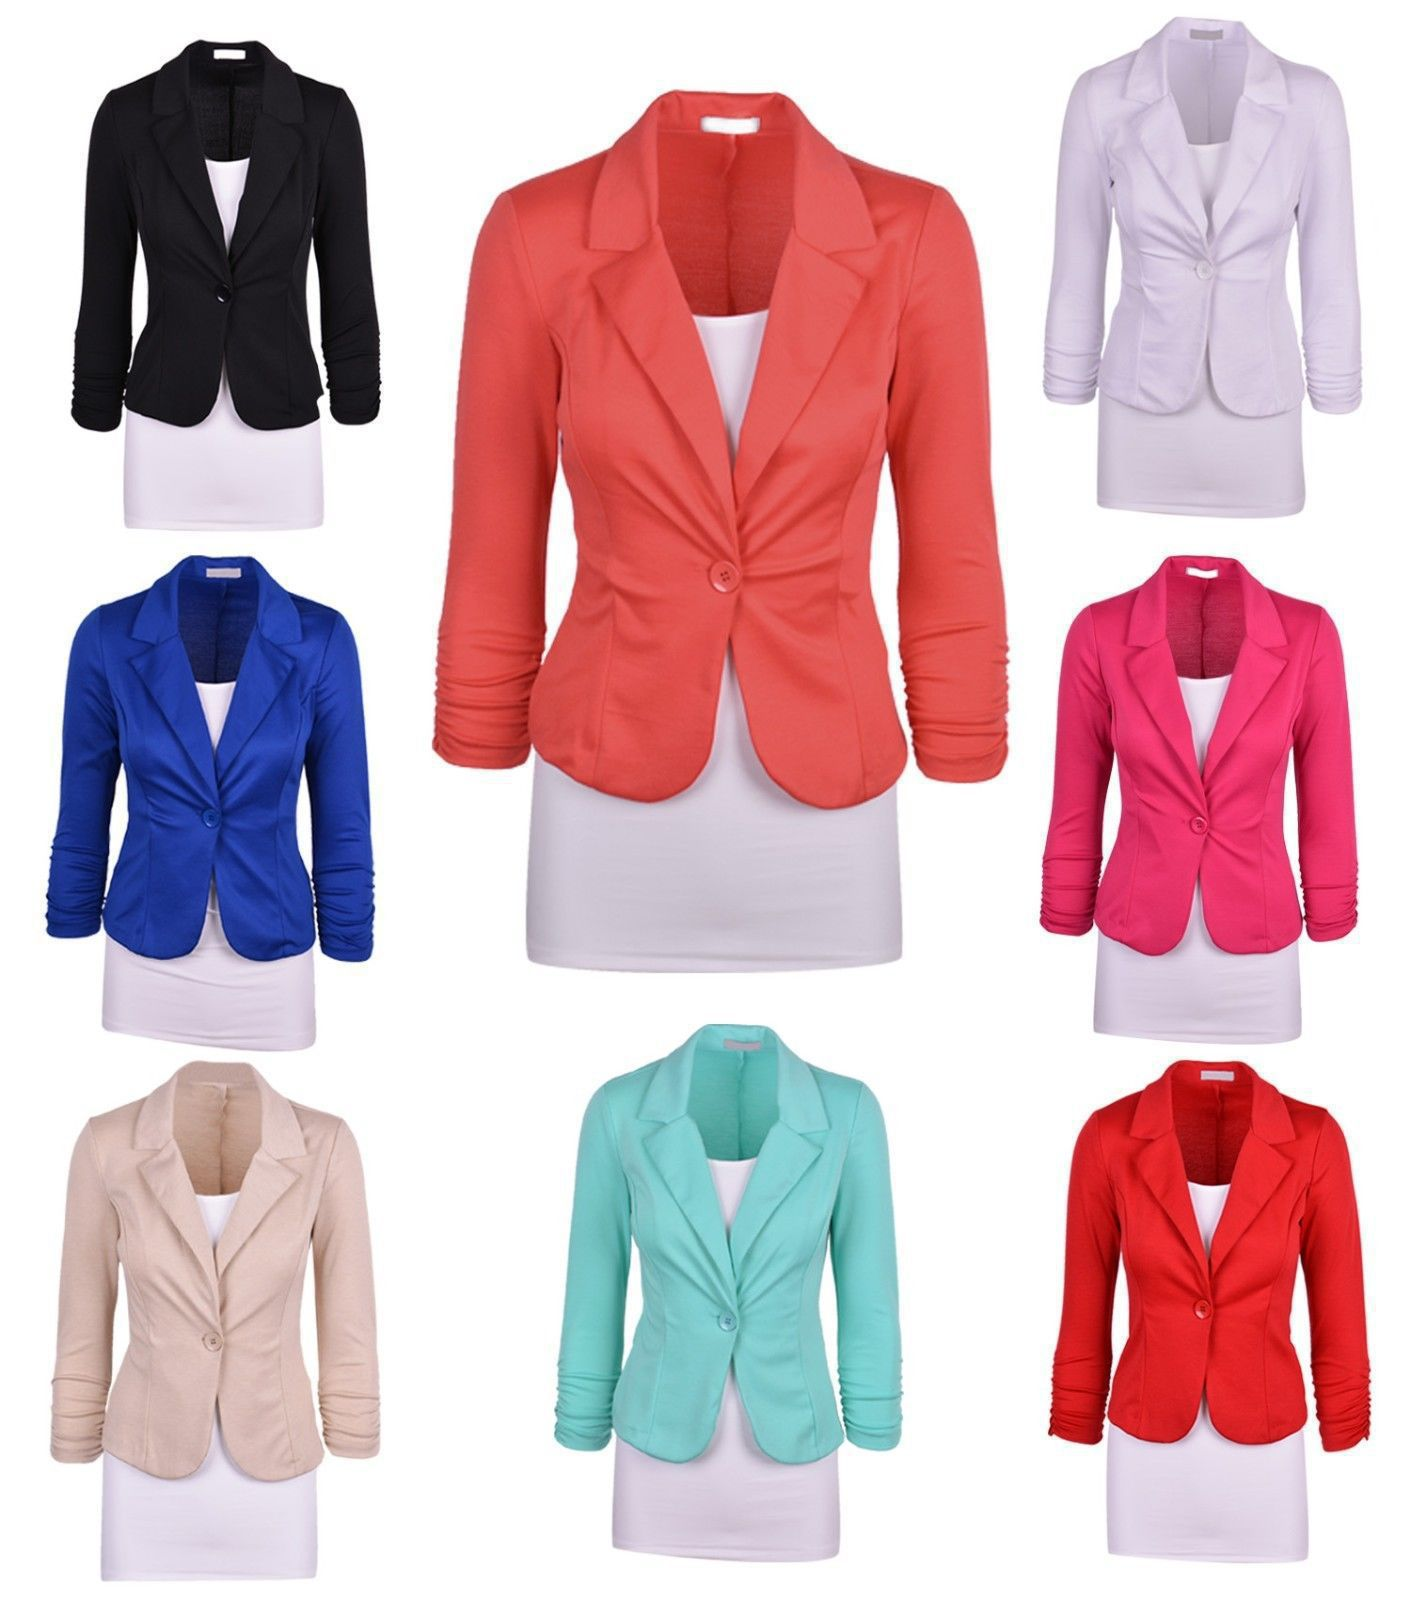 Small Suit Wholesale New Style Slim Fit One-button Suit Jacket Women's Currently Available